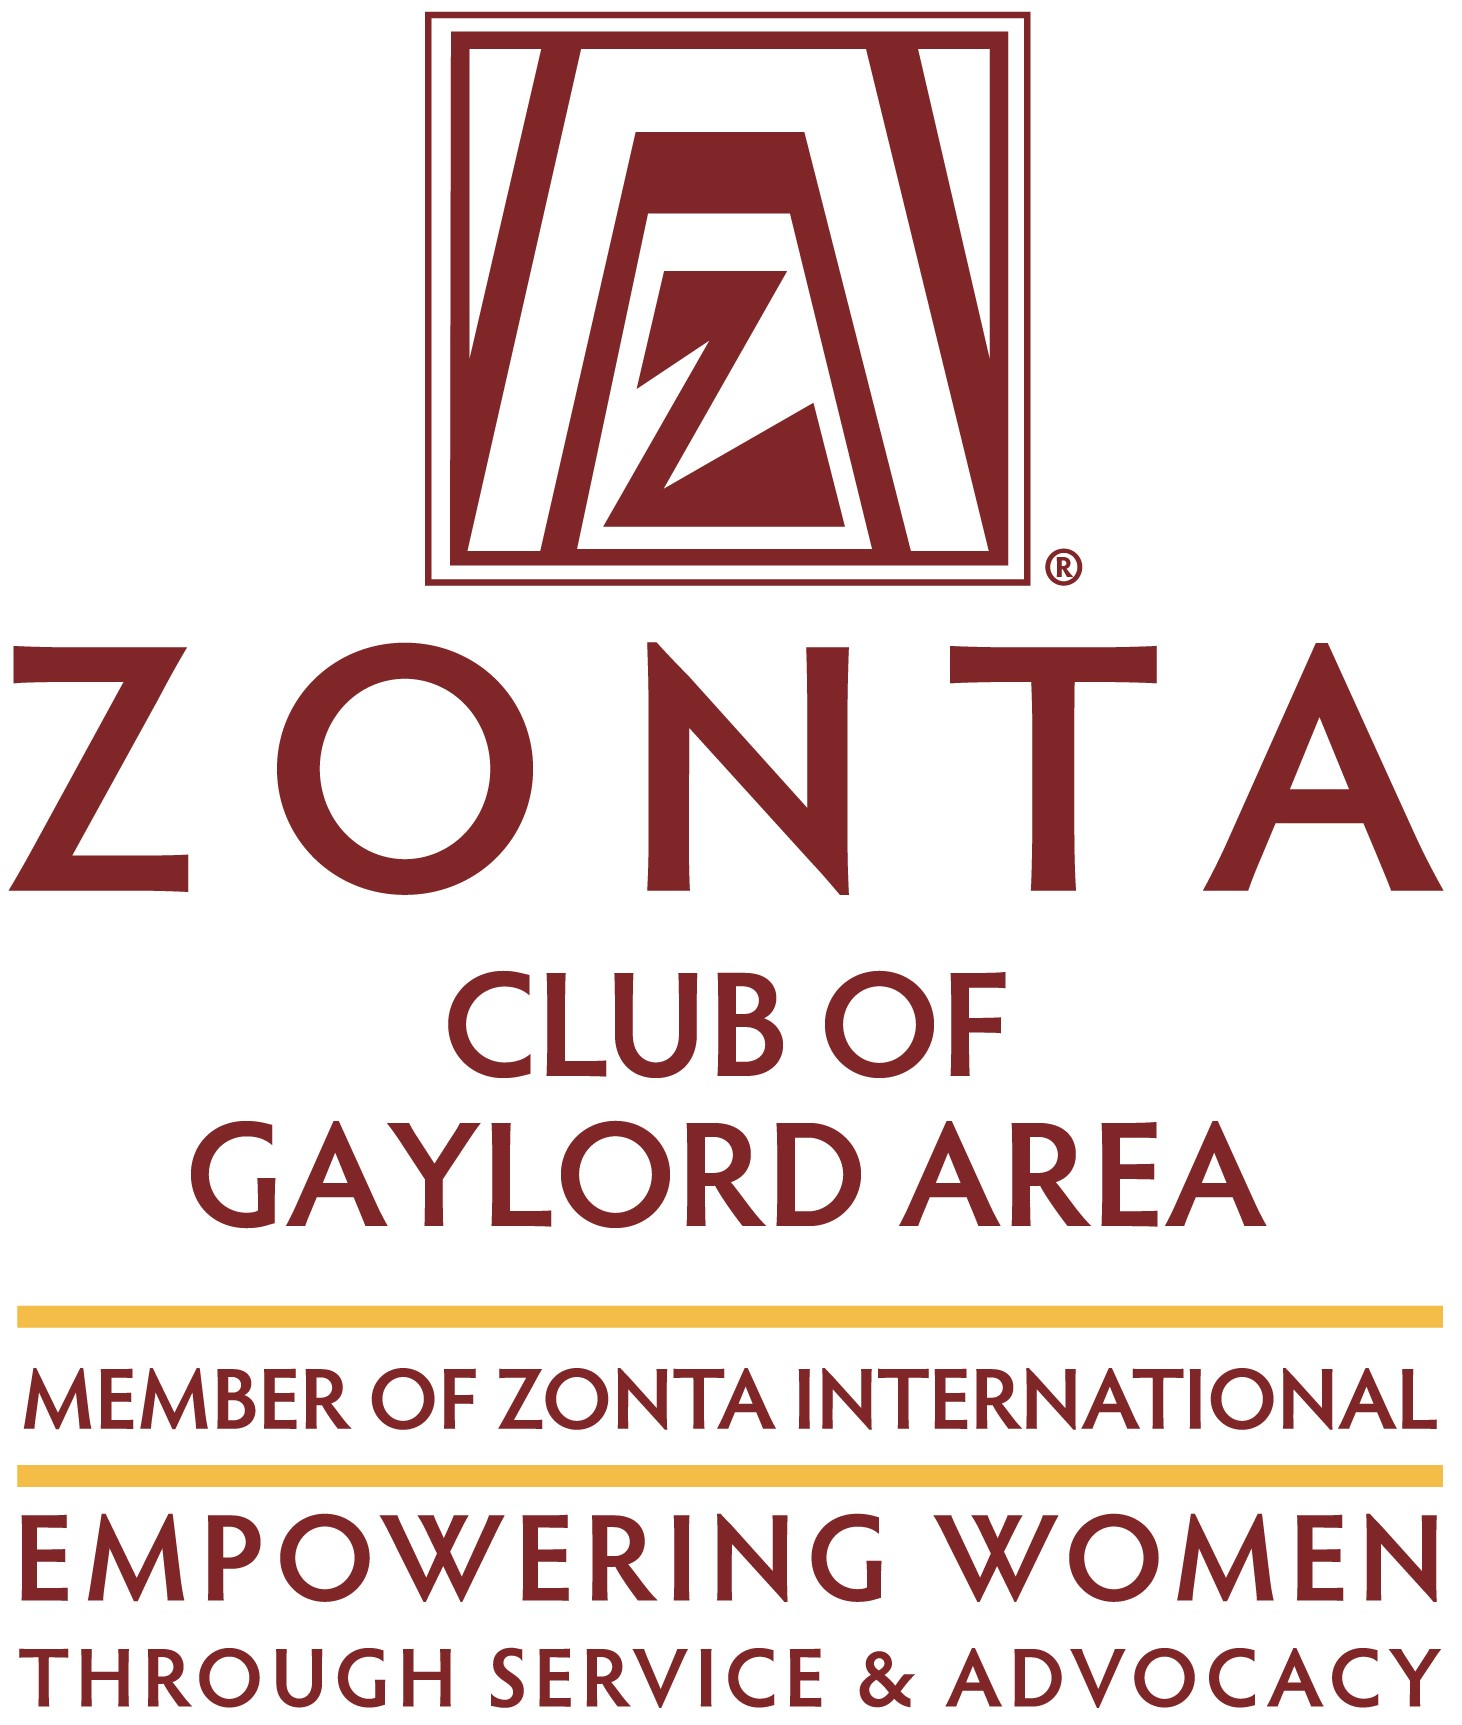 Zonta Club of Gaylord Area